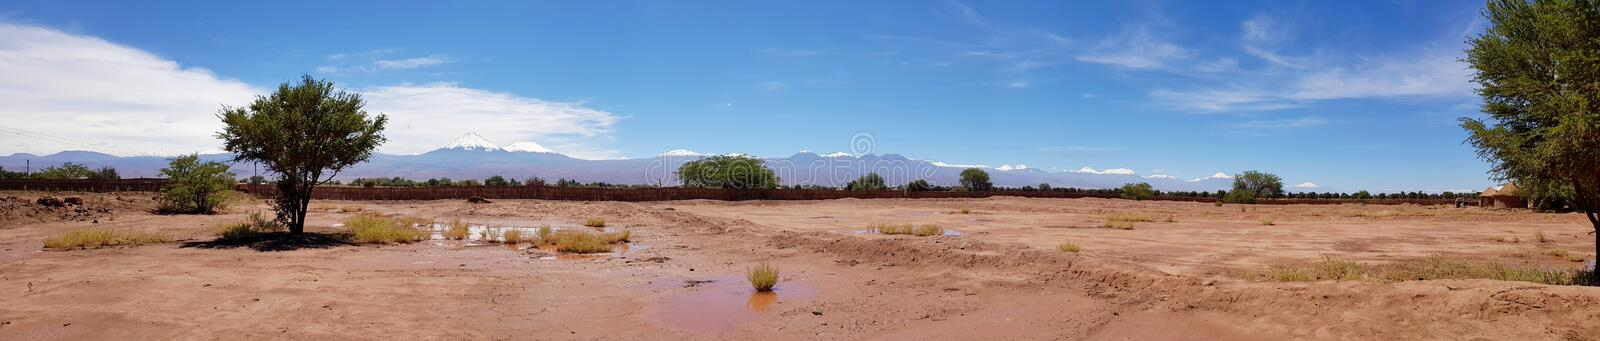 The arid and desolate landscape of the Atacama Desert and the peaks of the snowy volcanoes of the Andes cordillera in the backgrou. View of the arid and desolate stock image